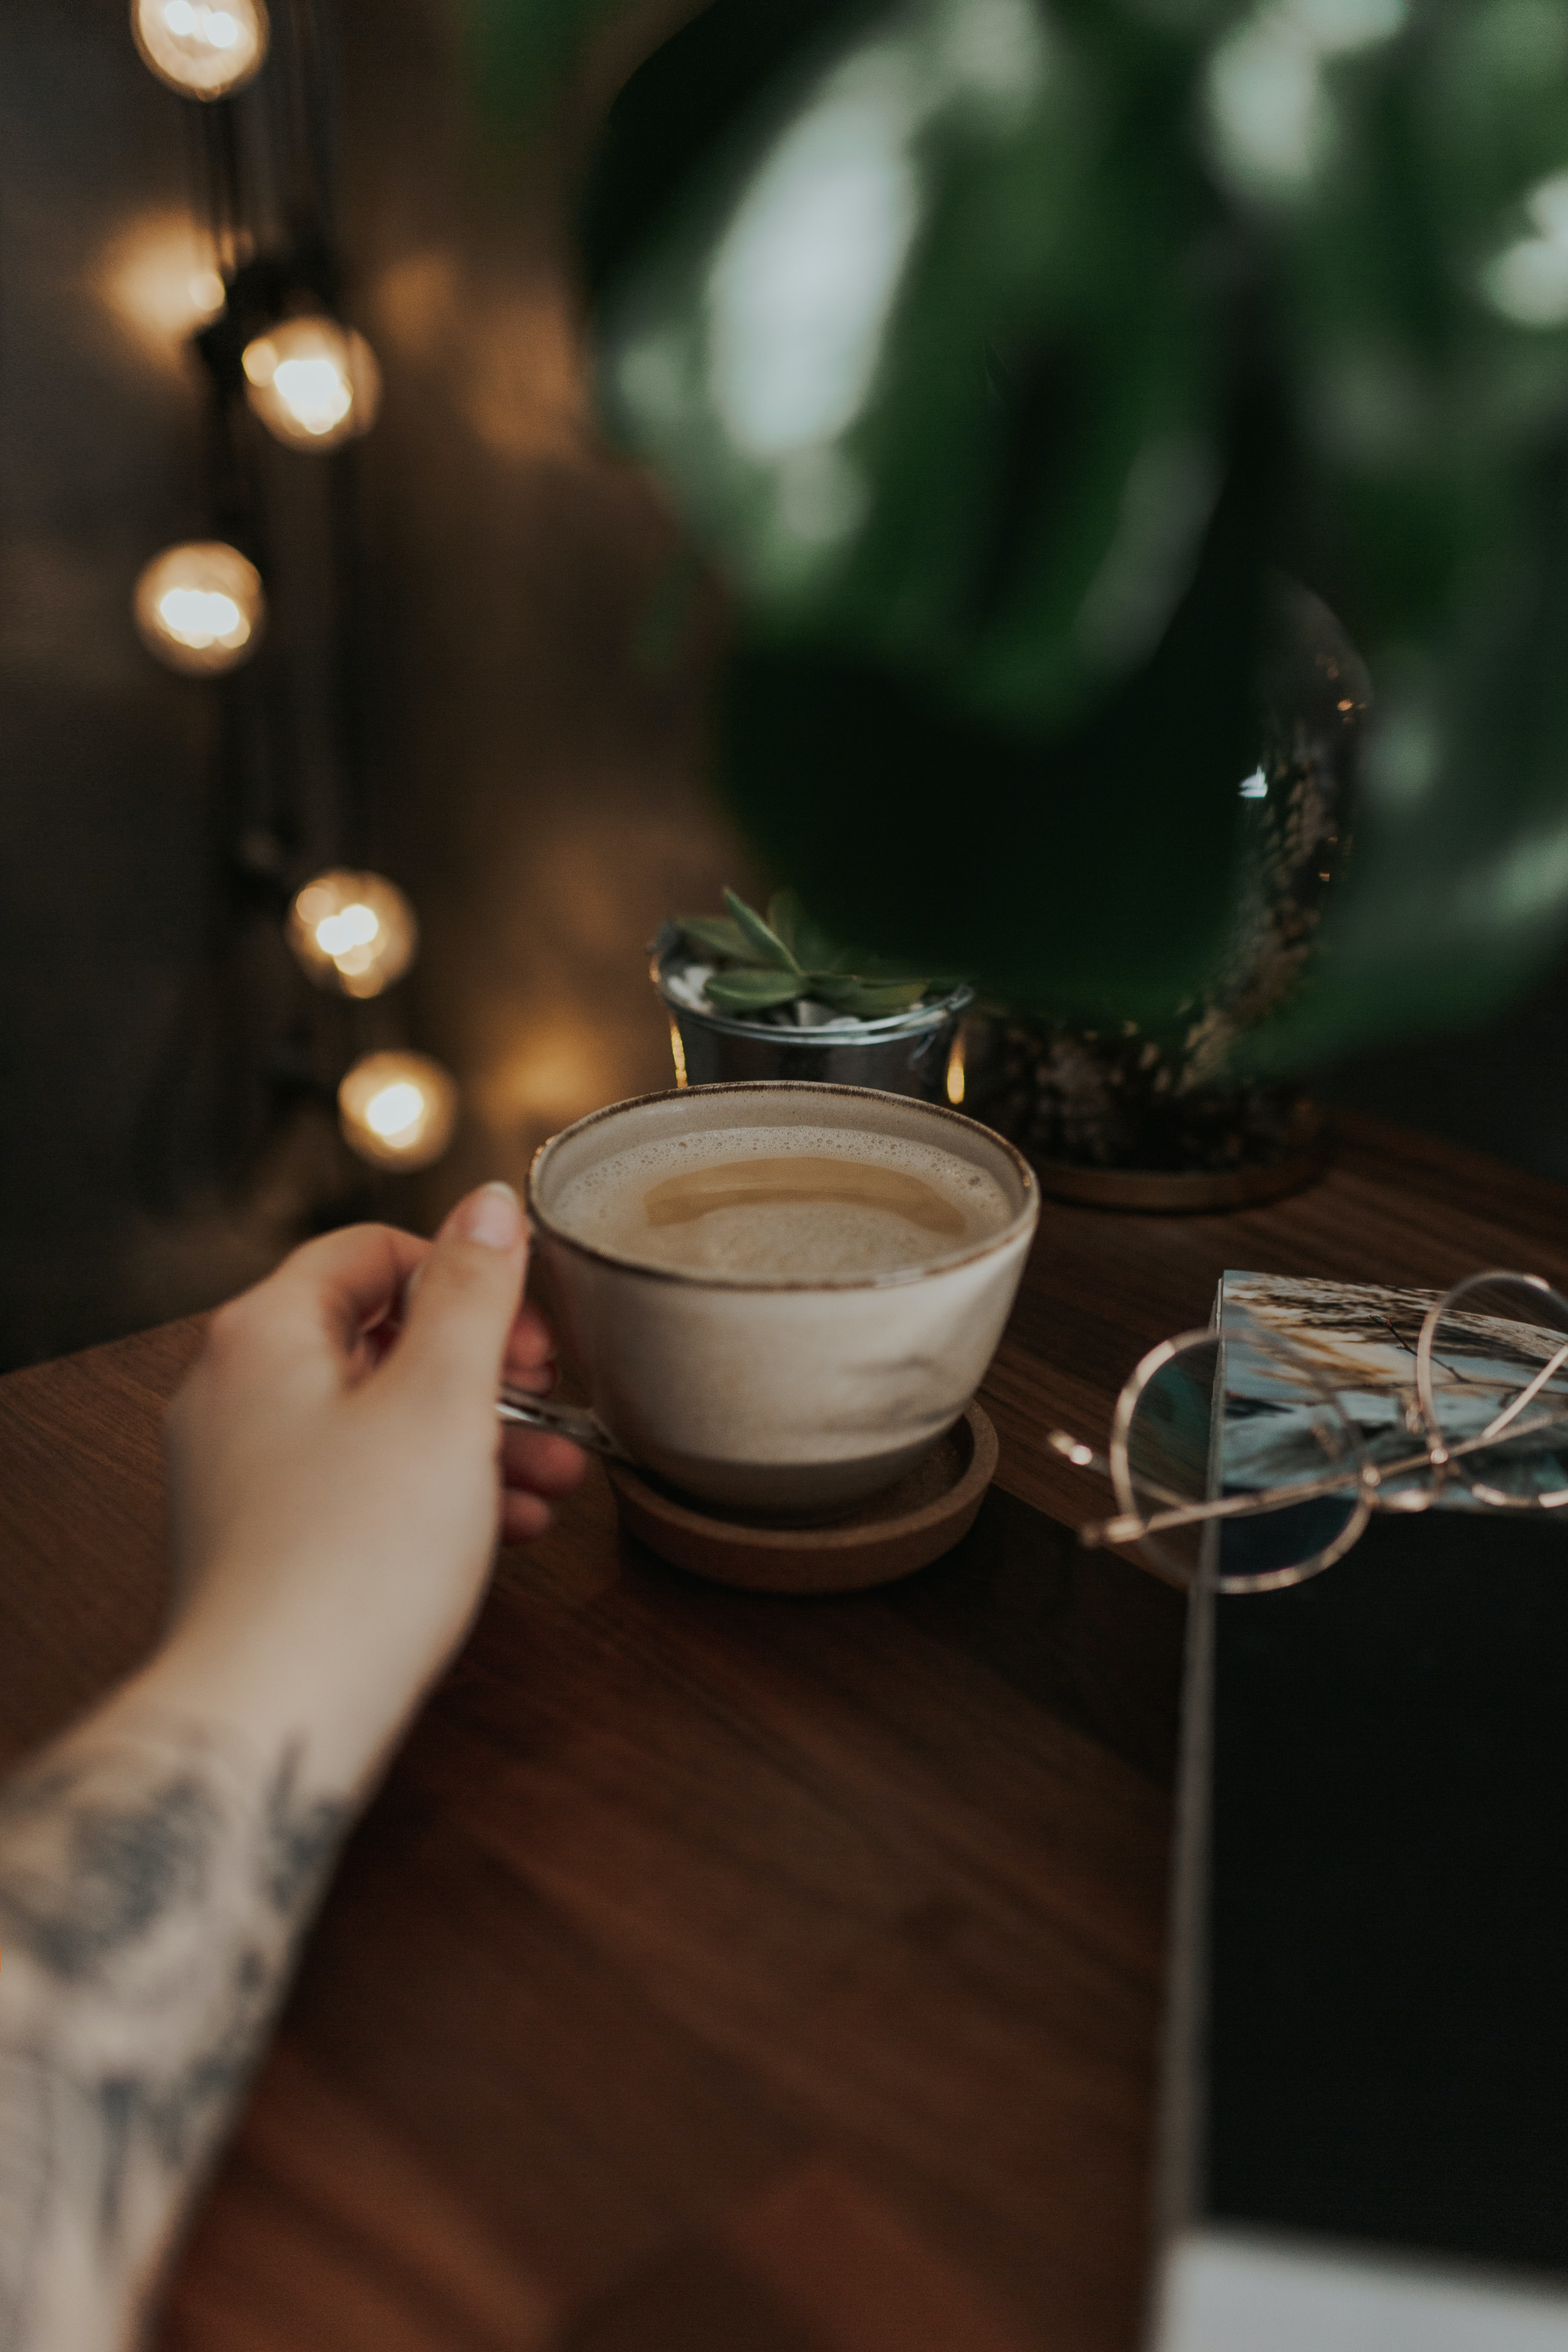 106197 download wallpaper Food, Cup, Coffee, Foam, Meerschaum, Drink, Beverage, Hand screensavers and pictures for free